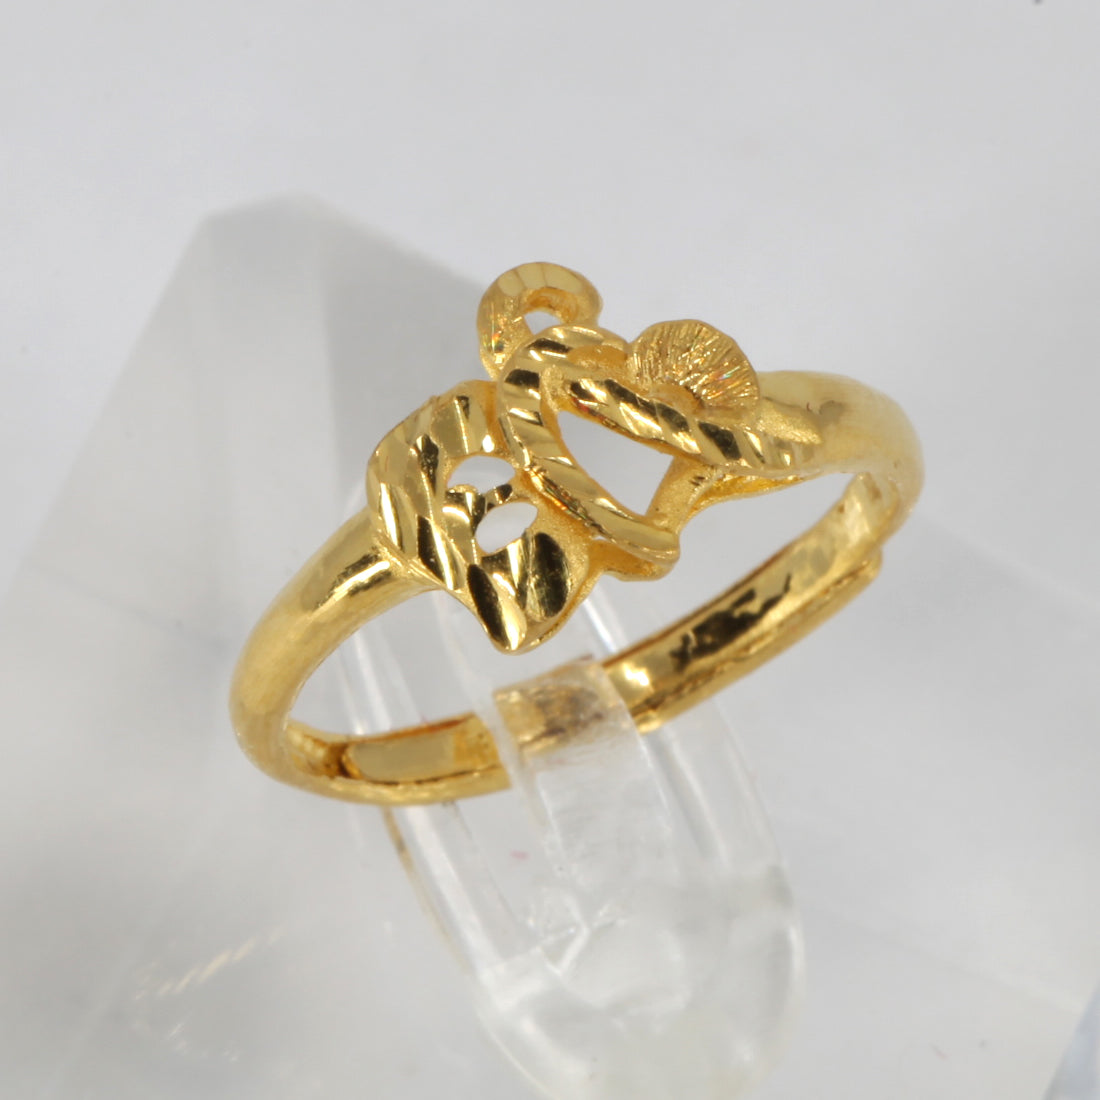 24K Solid Yellow Gold Women Double Heart Ring Band 3.2 Grams